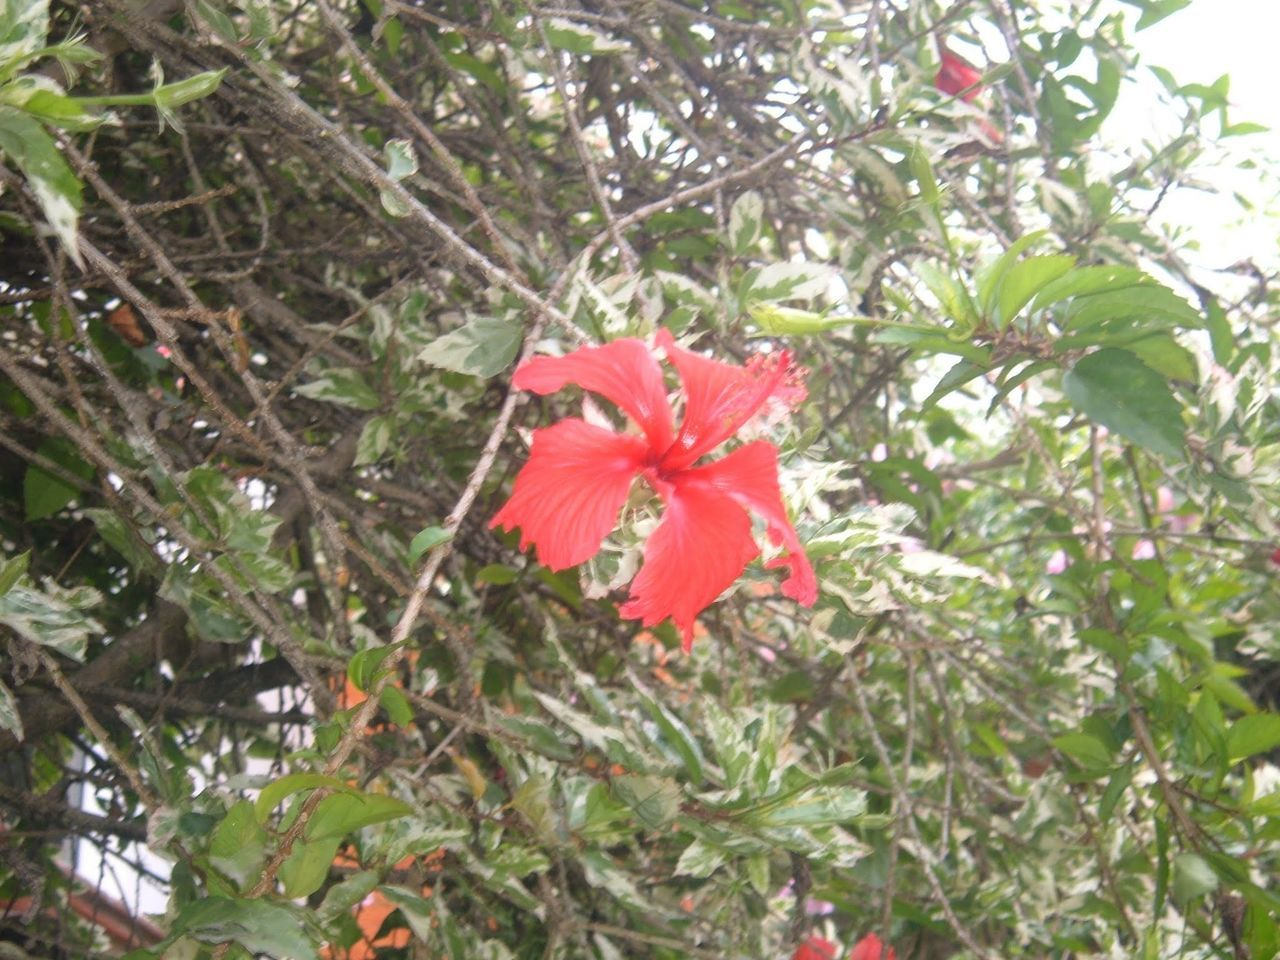 flower, growth, day, nature, outdoors, flower head, no people, red, fragility, hibiscus, freshness, blooming, close-up, beauty in nature